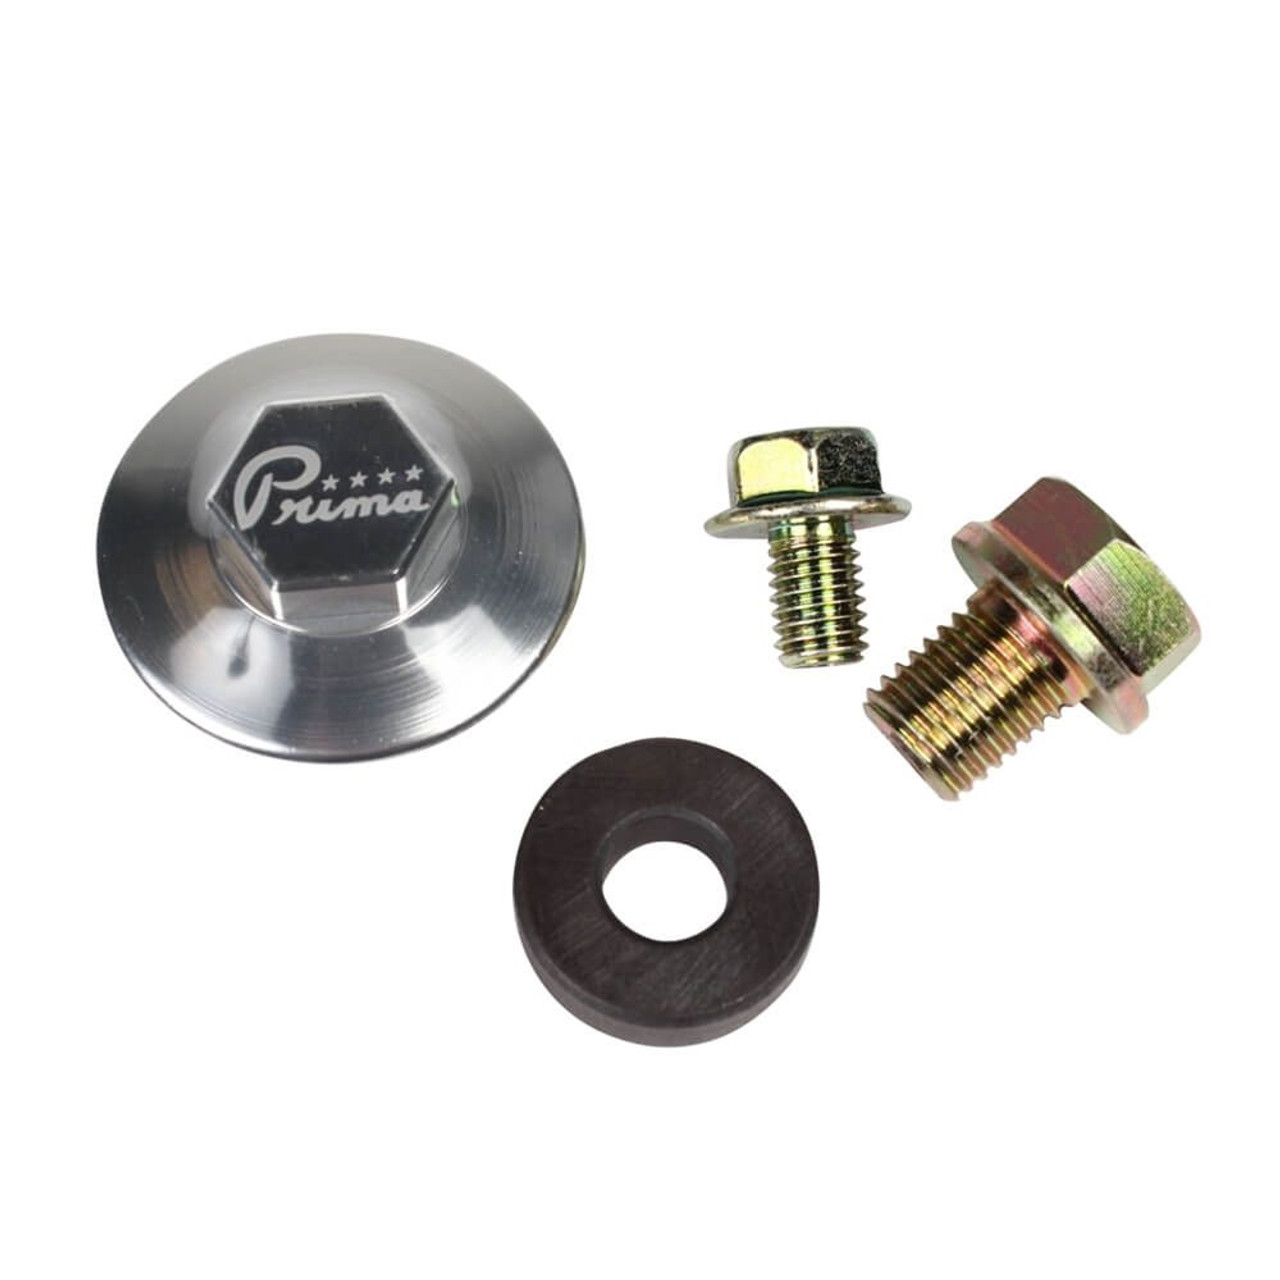 PRIMA MAGNETIC OIL DRAIN KIT FOR (QMB139 & GY6 MOTORS)